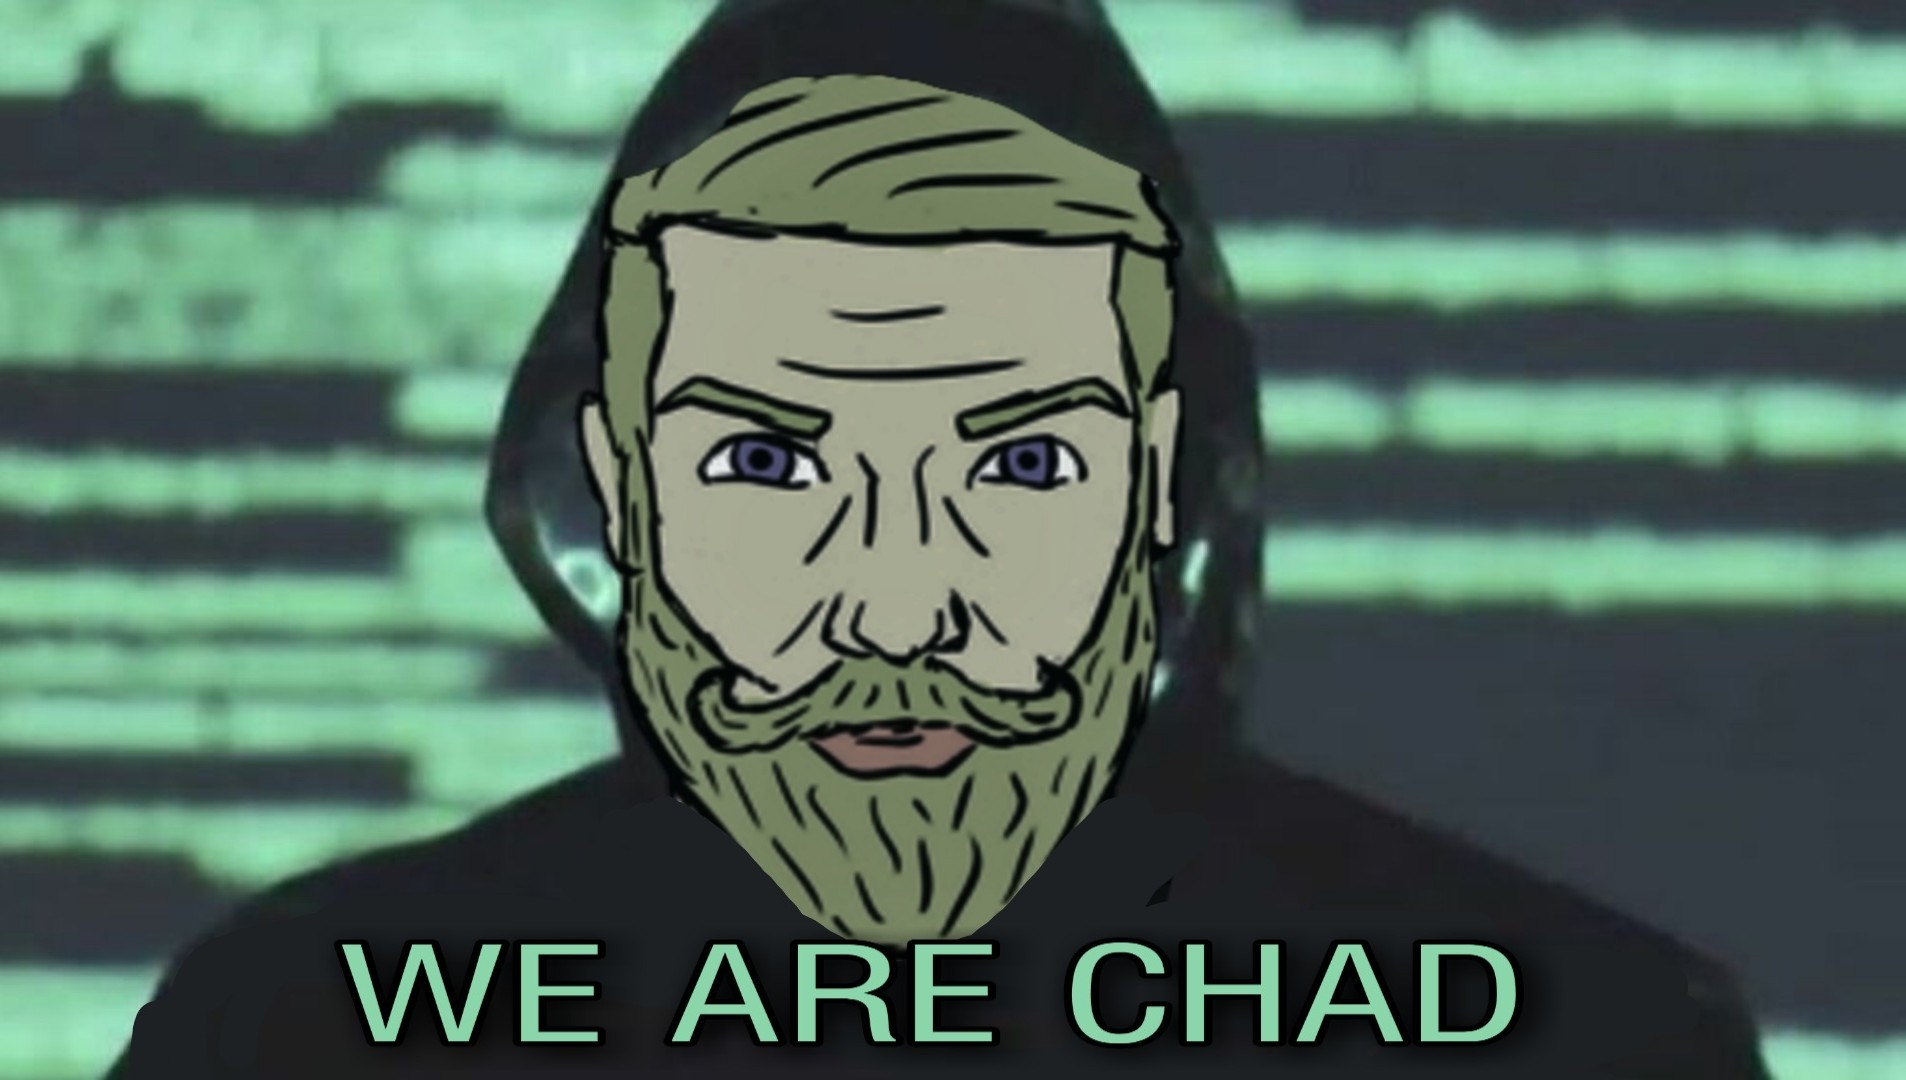 We are chad - meme